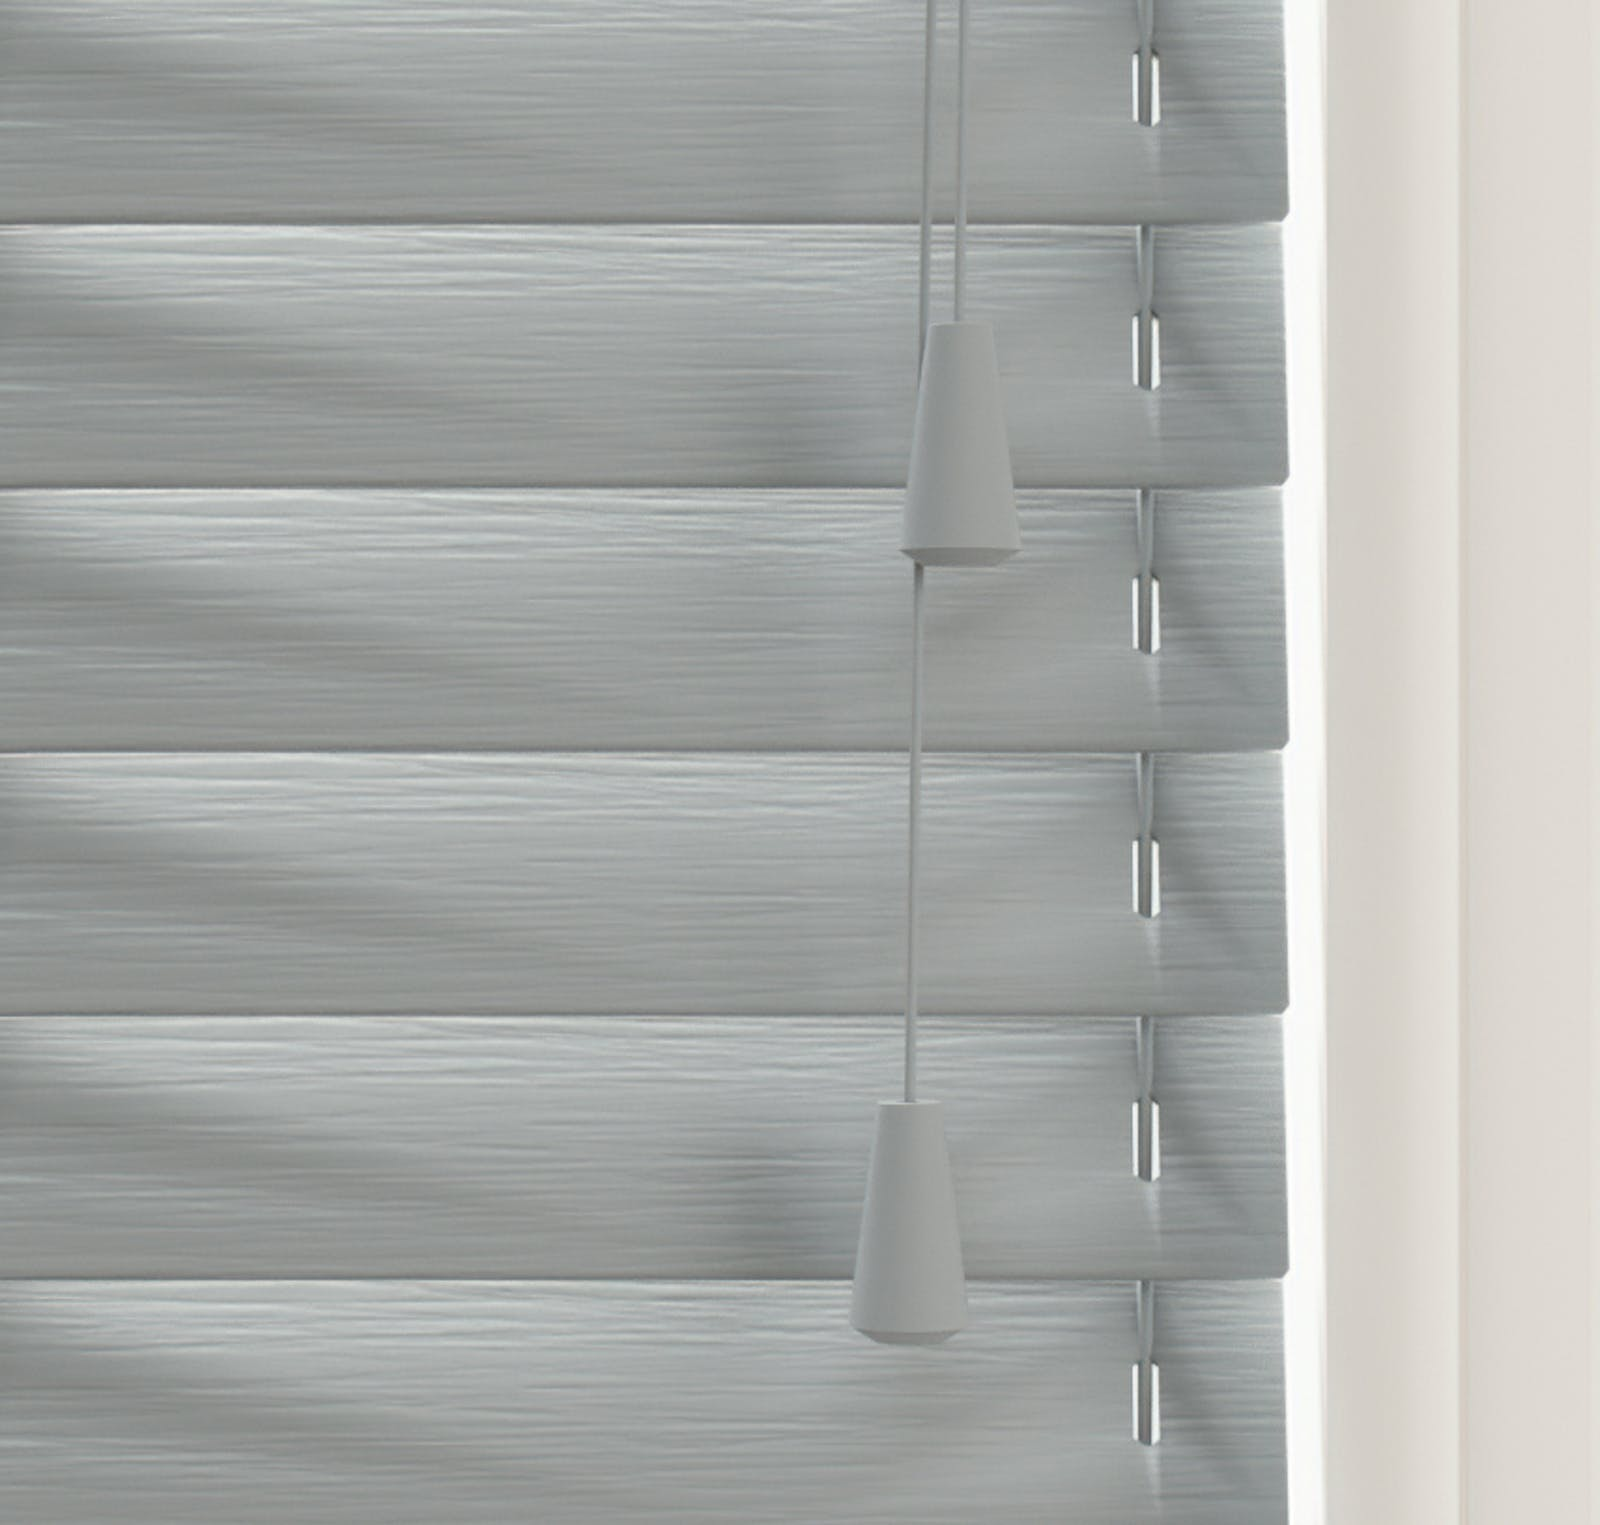 Close up view of Lick Grey 06 Venetian fine grain blinds